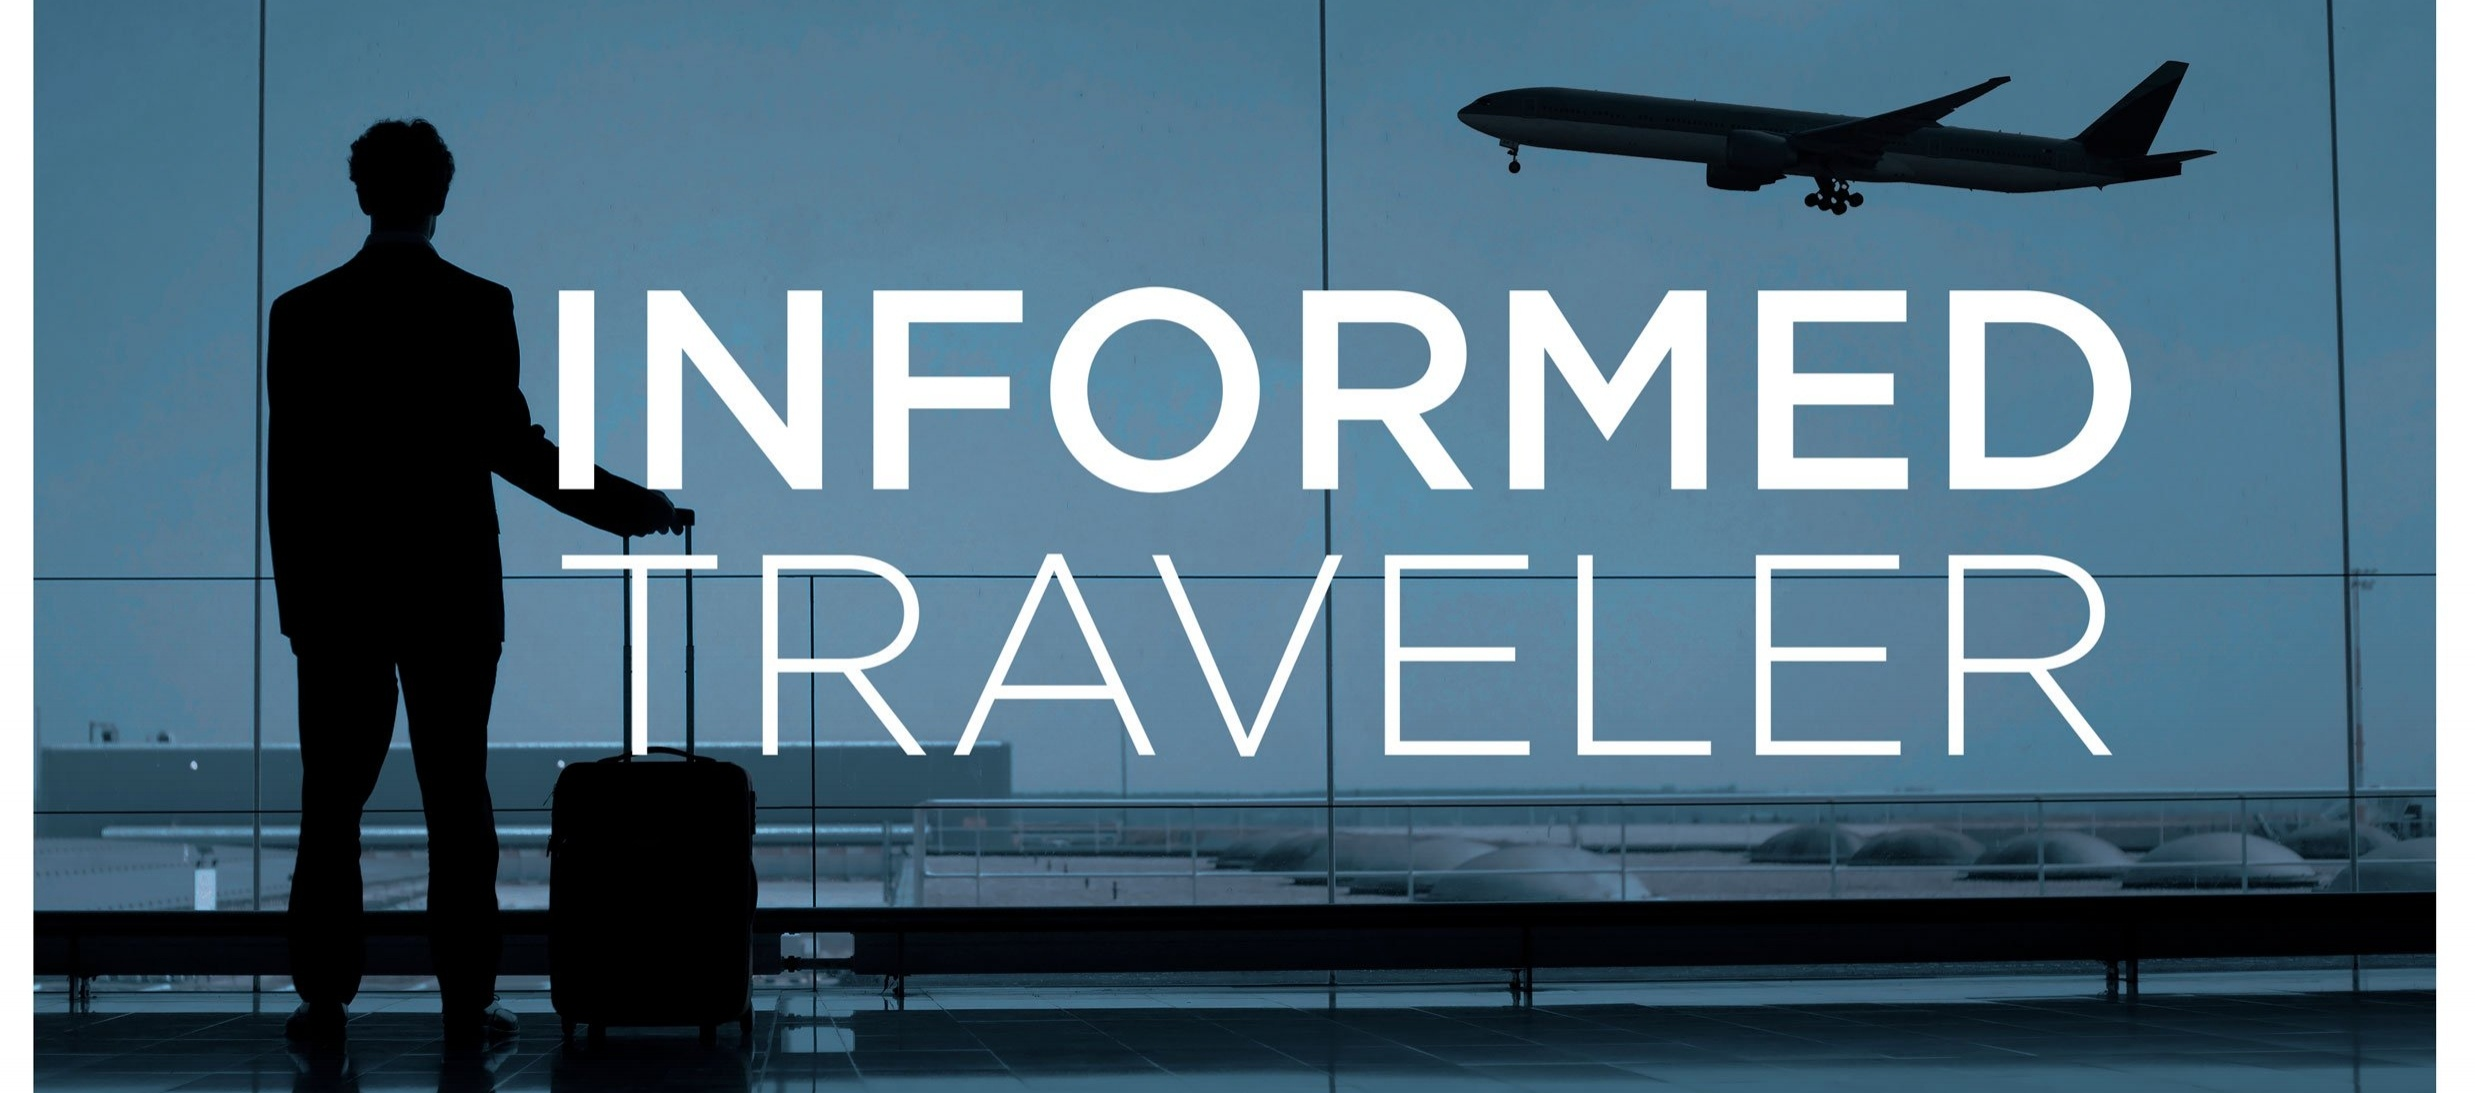 Informed-Traveler-Blog-Photo1 (002)-366965-edited